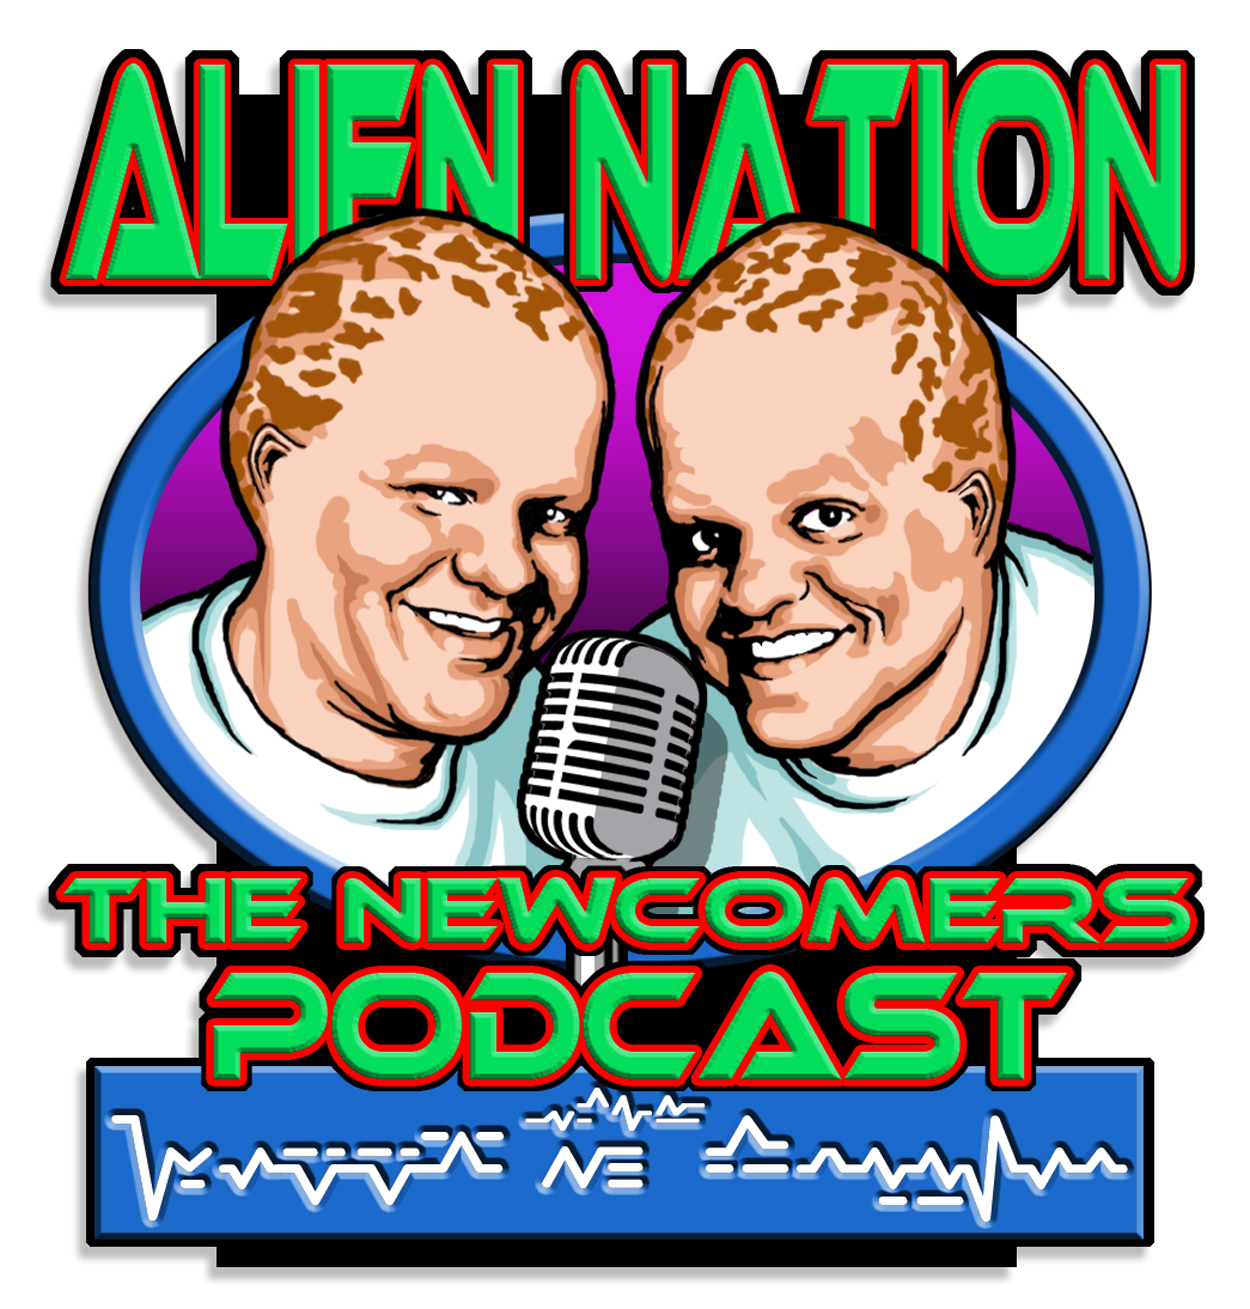 Alien Nation: The Newcomers Podcast